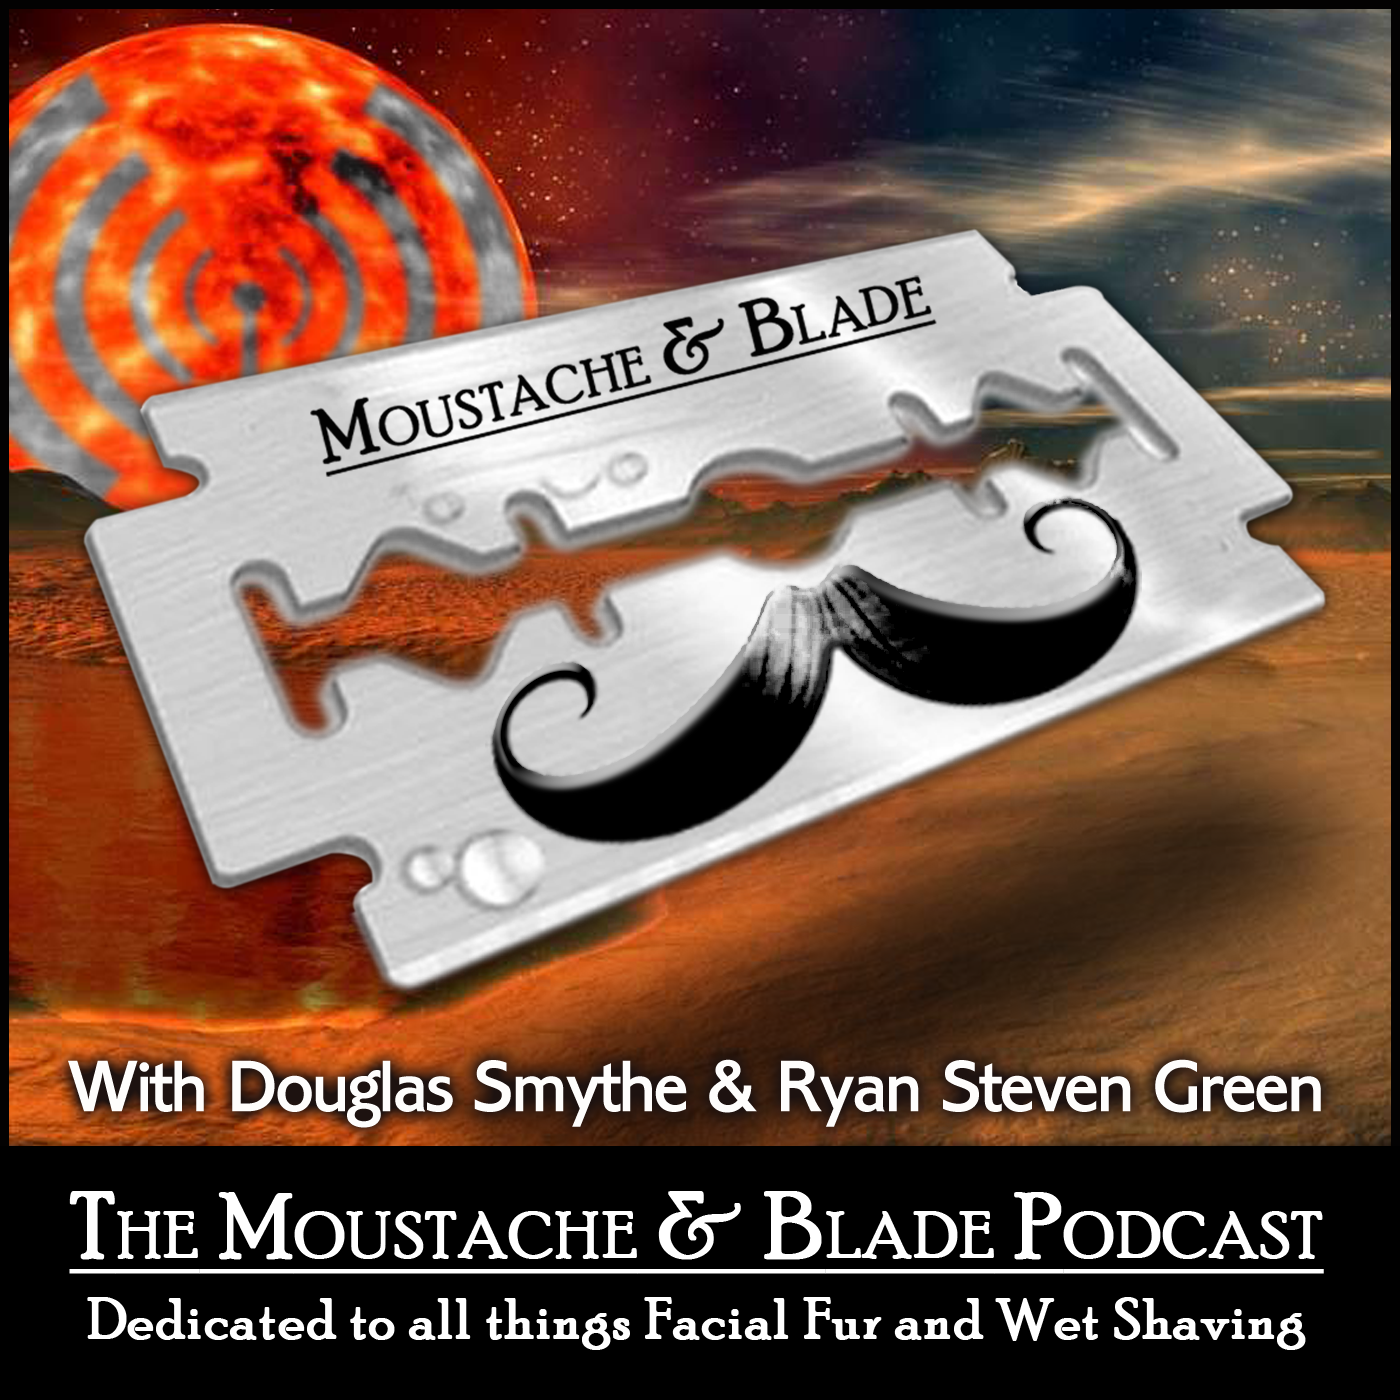 Moustache and Blade Podcast - Wet Shaving Podcast - Male Grooming